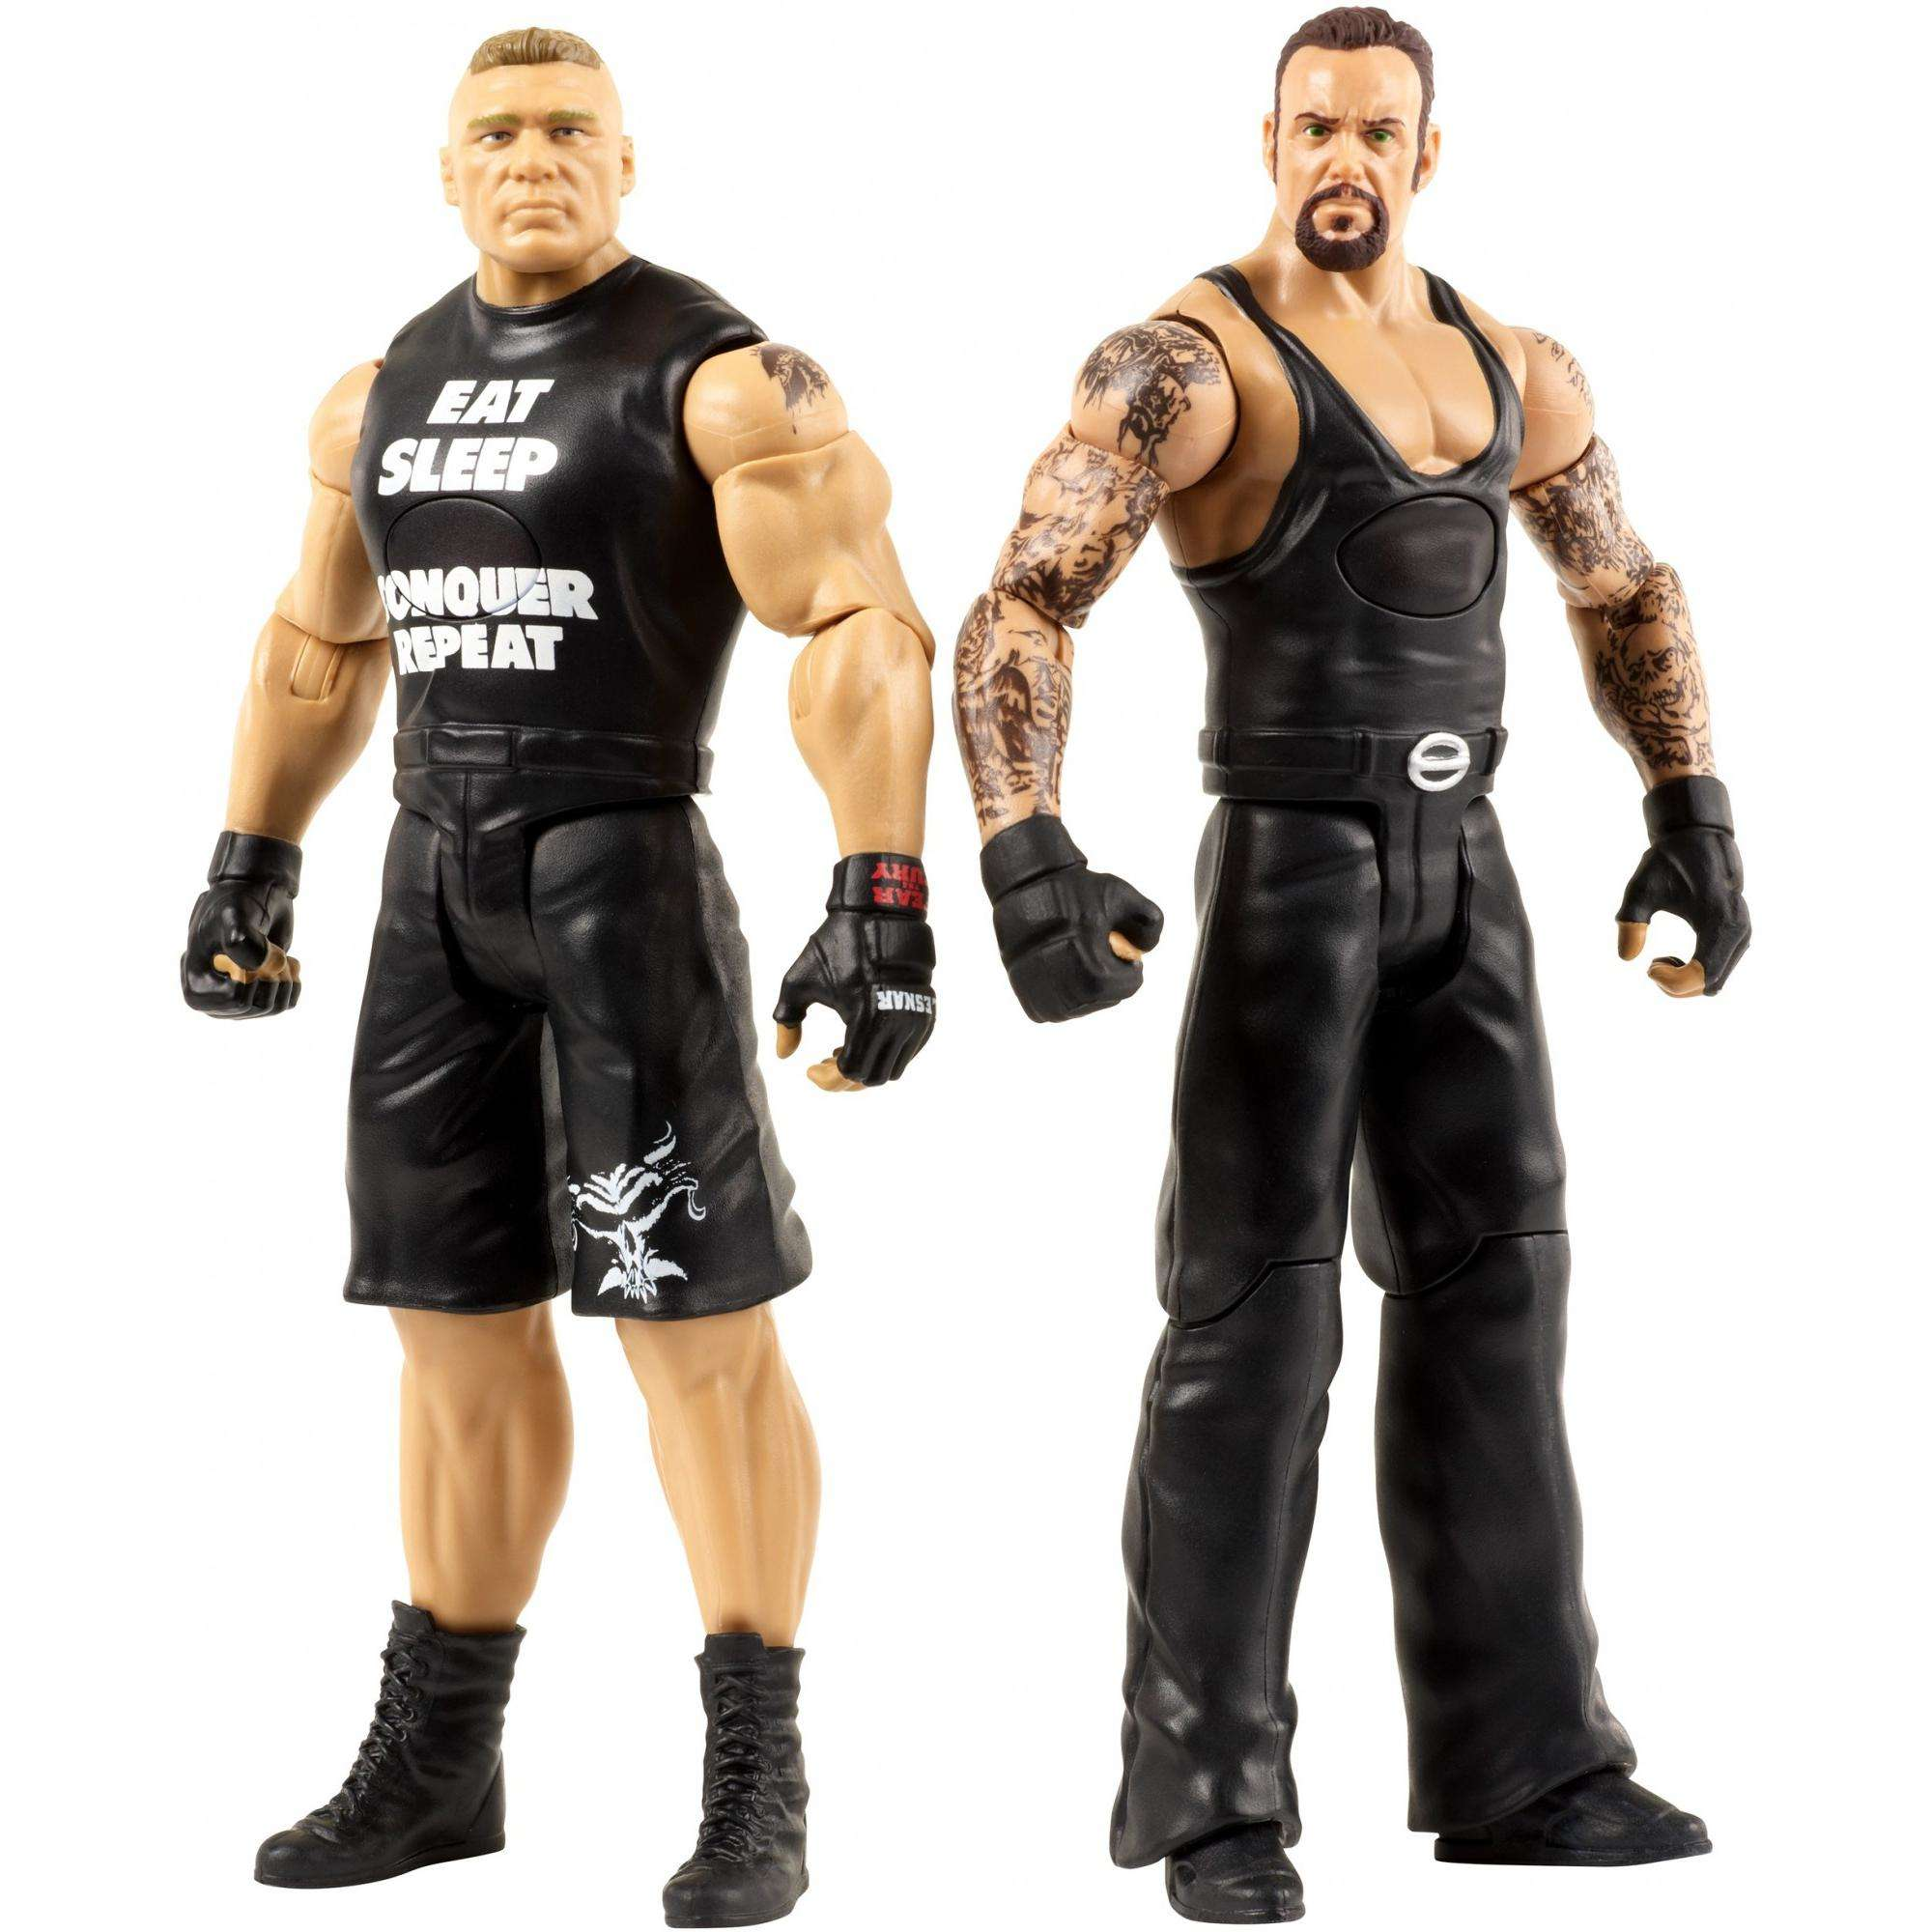 WWE Tough Talkers Undertaker & Brock Lesnar Innovation Figures 2-Pack by Mattel